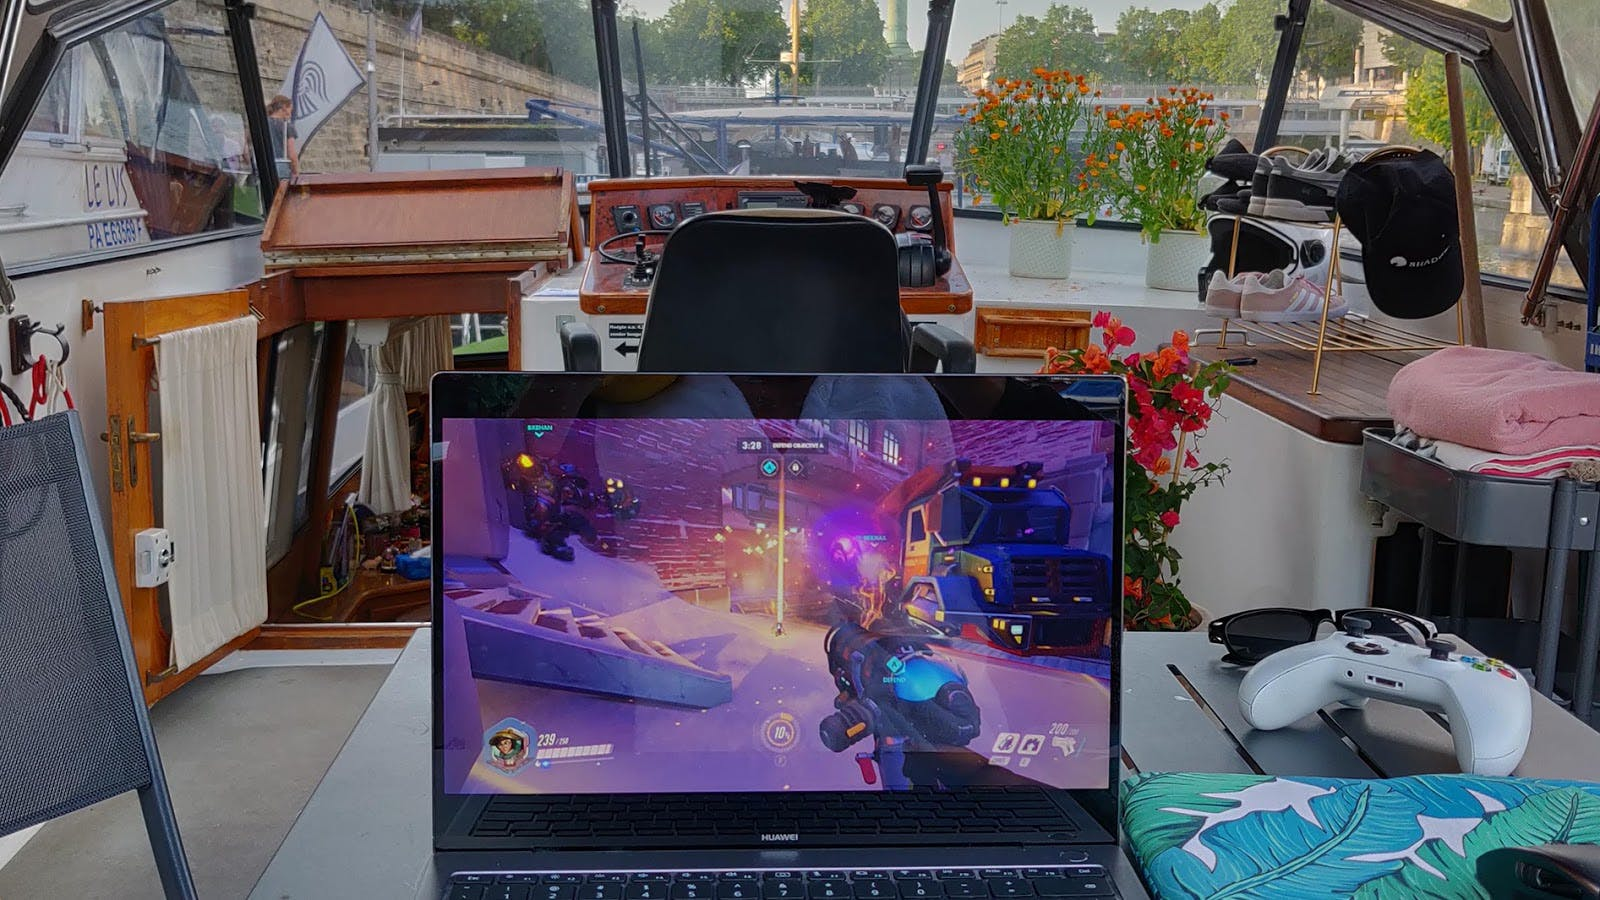 Shadow top 10 des setups gaming - bonus boat